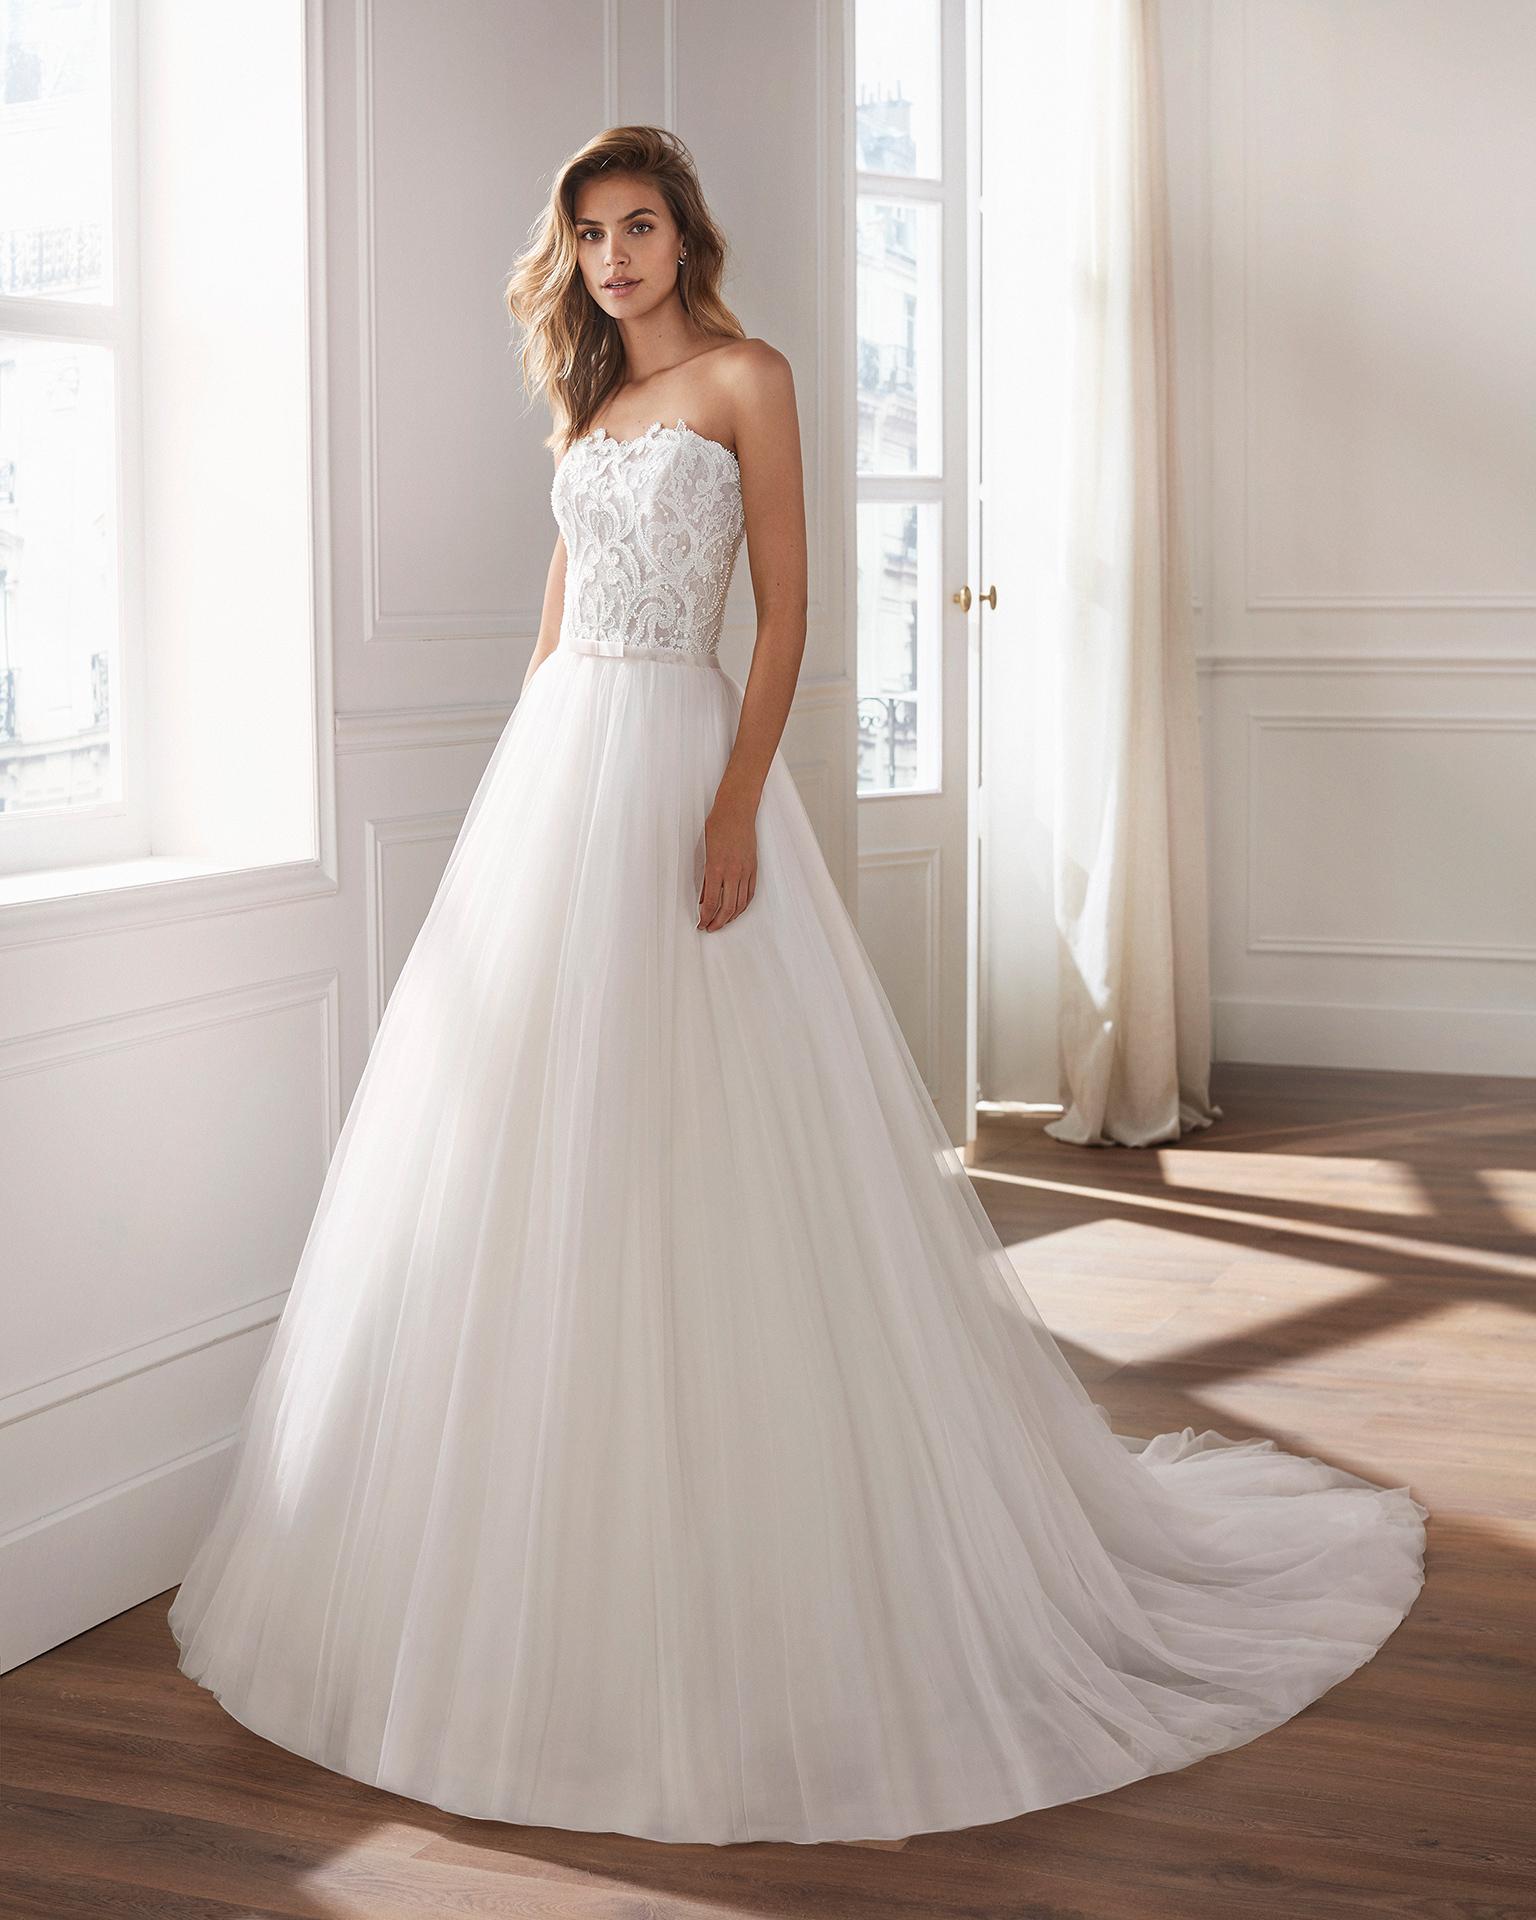 Lace and tulle princess-style wedding dress. Strapless neckline and embroidered bodice of beaded lace. Available in pink and natural. 2019  Collection.